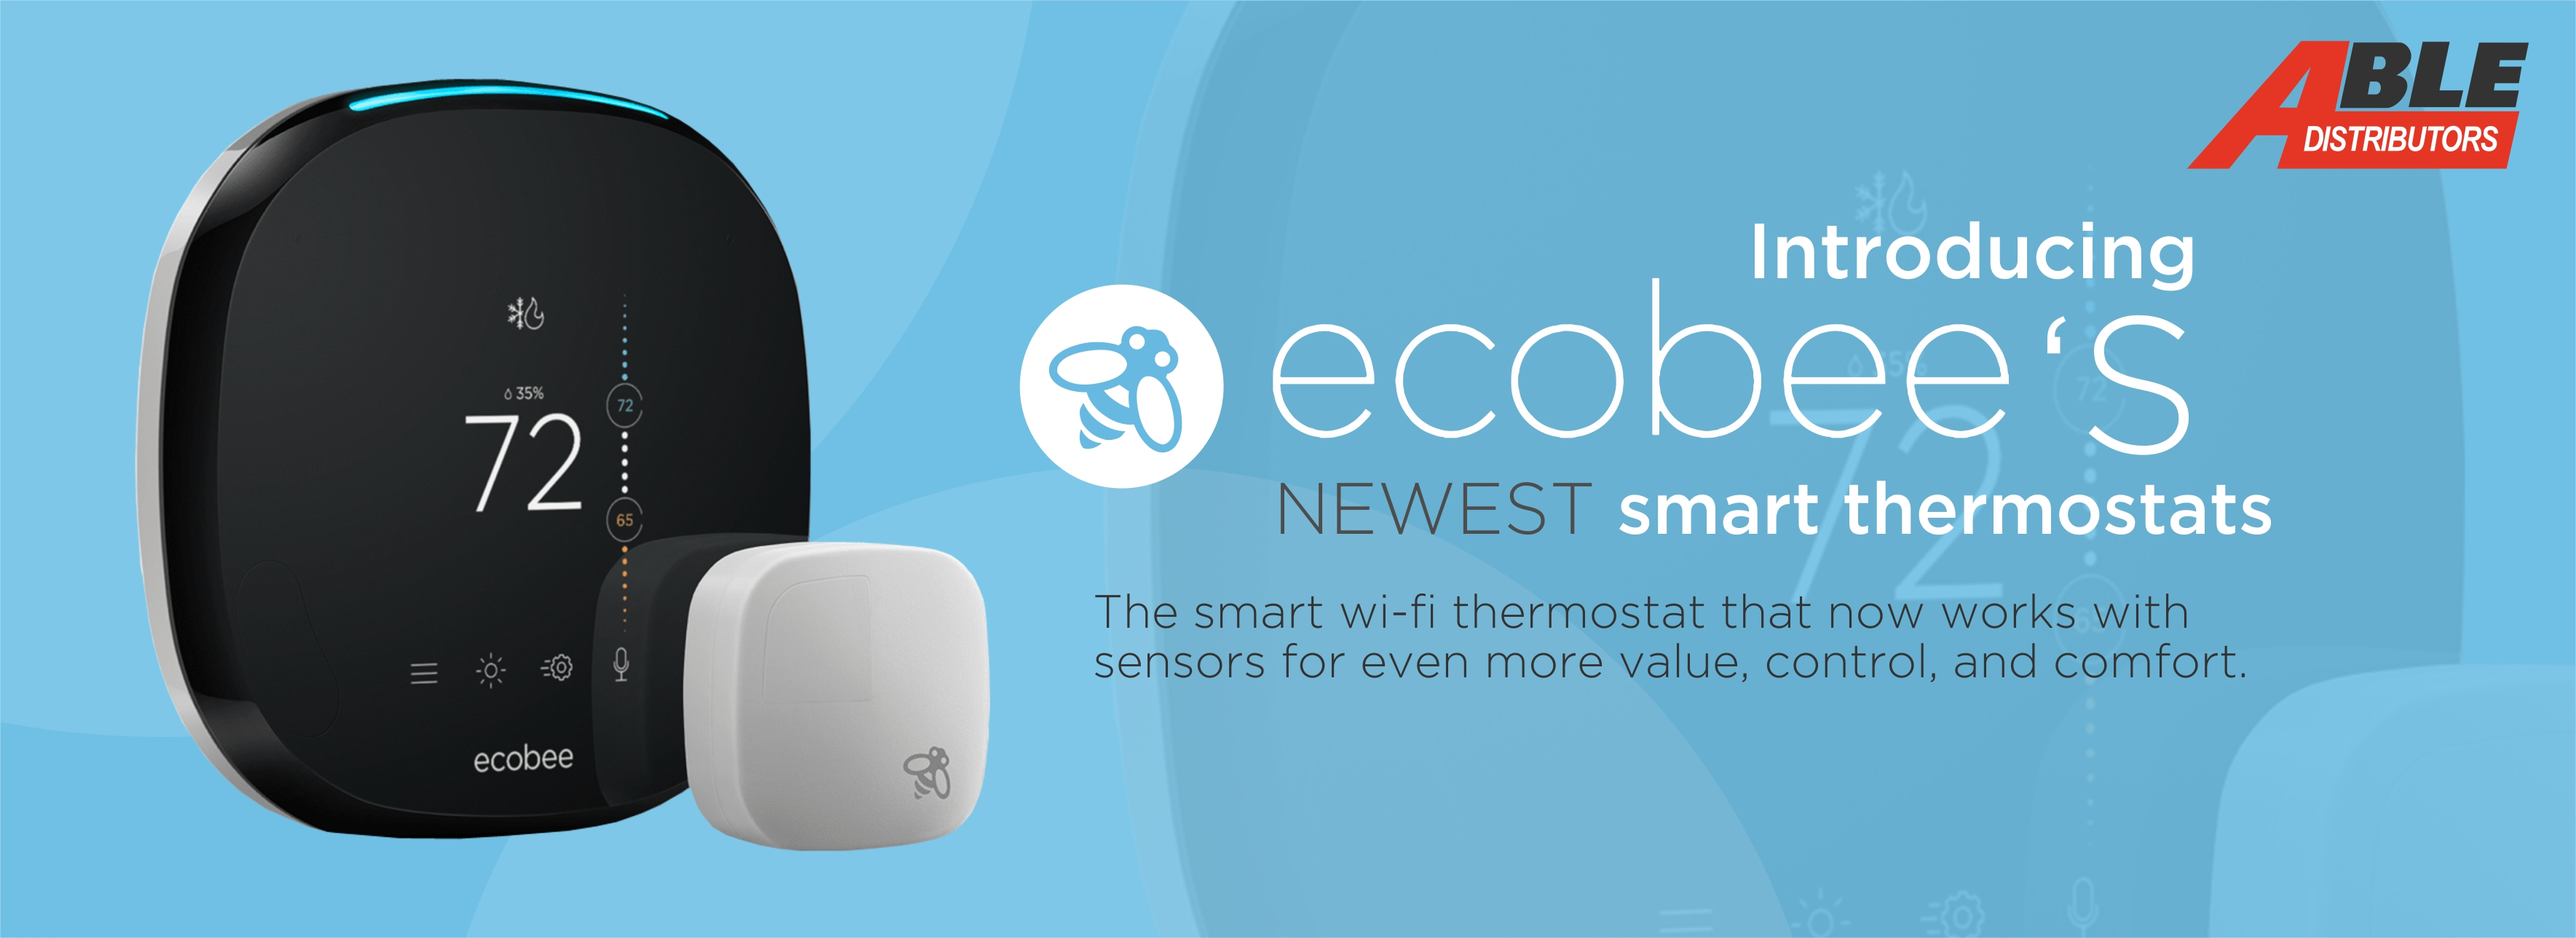 The Ecobee4 Smart Thermostat Provides Complete Comfort Control